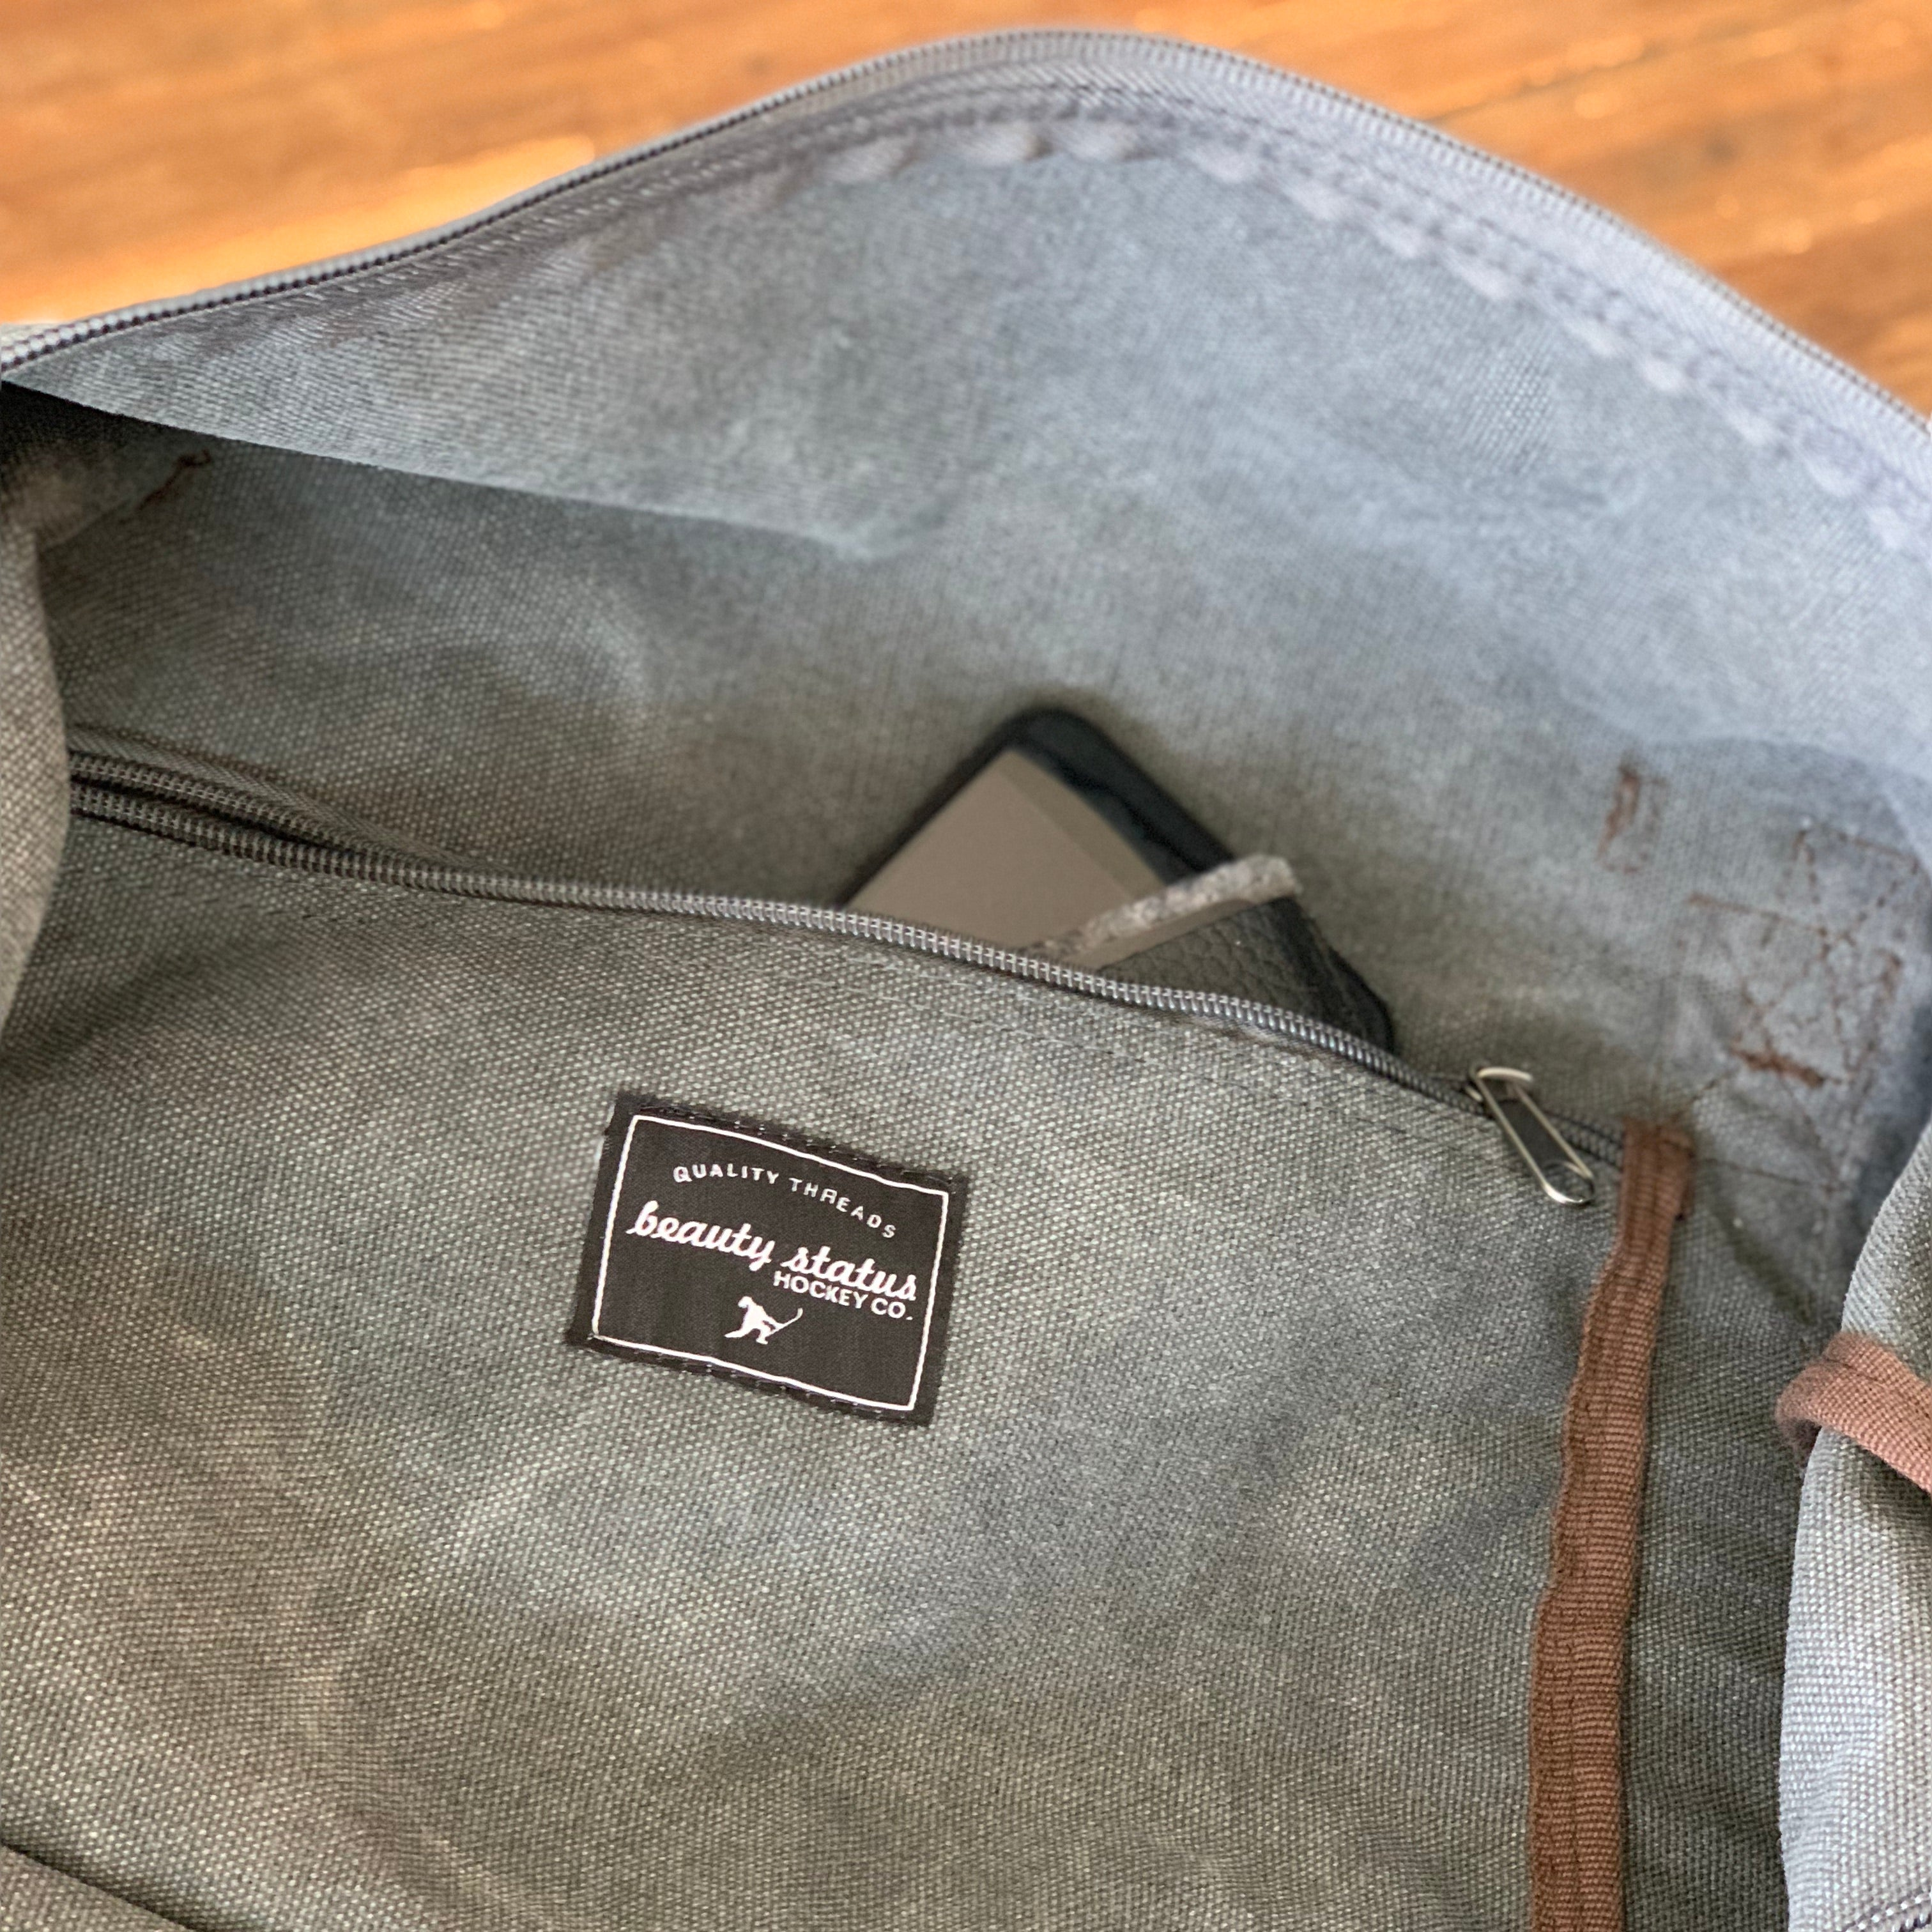 Characters legends duffel bag washed graphite beauty status hockey co